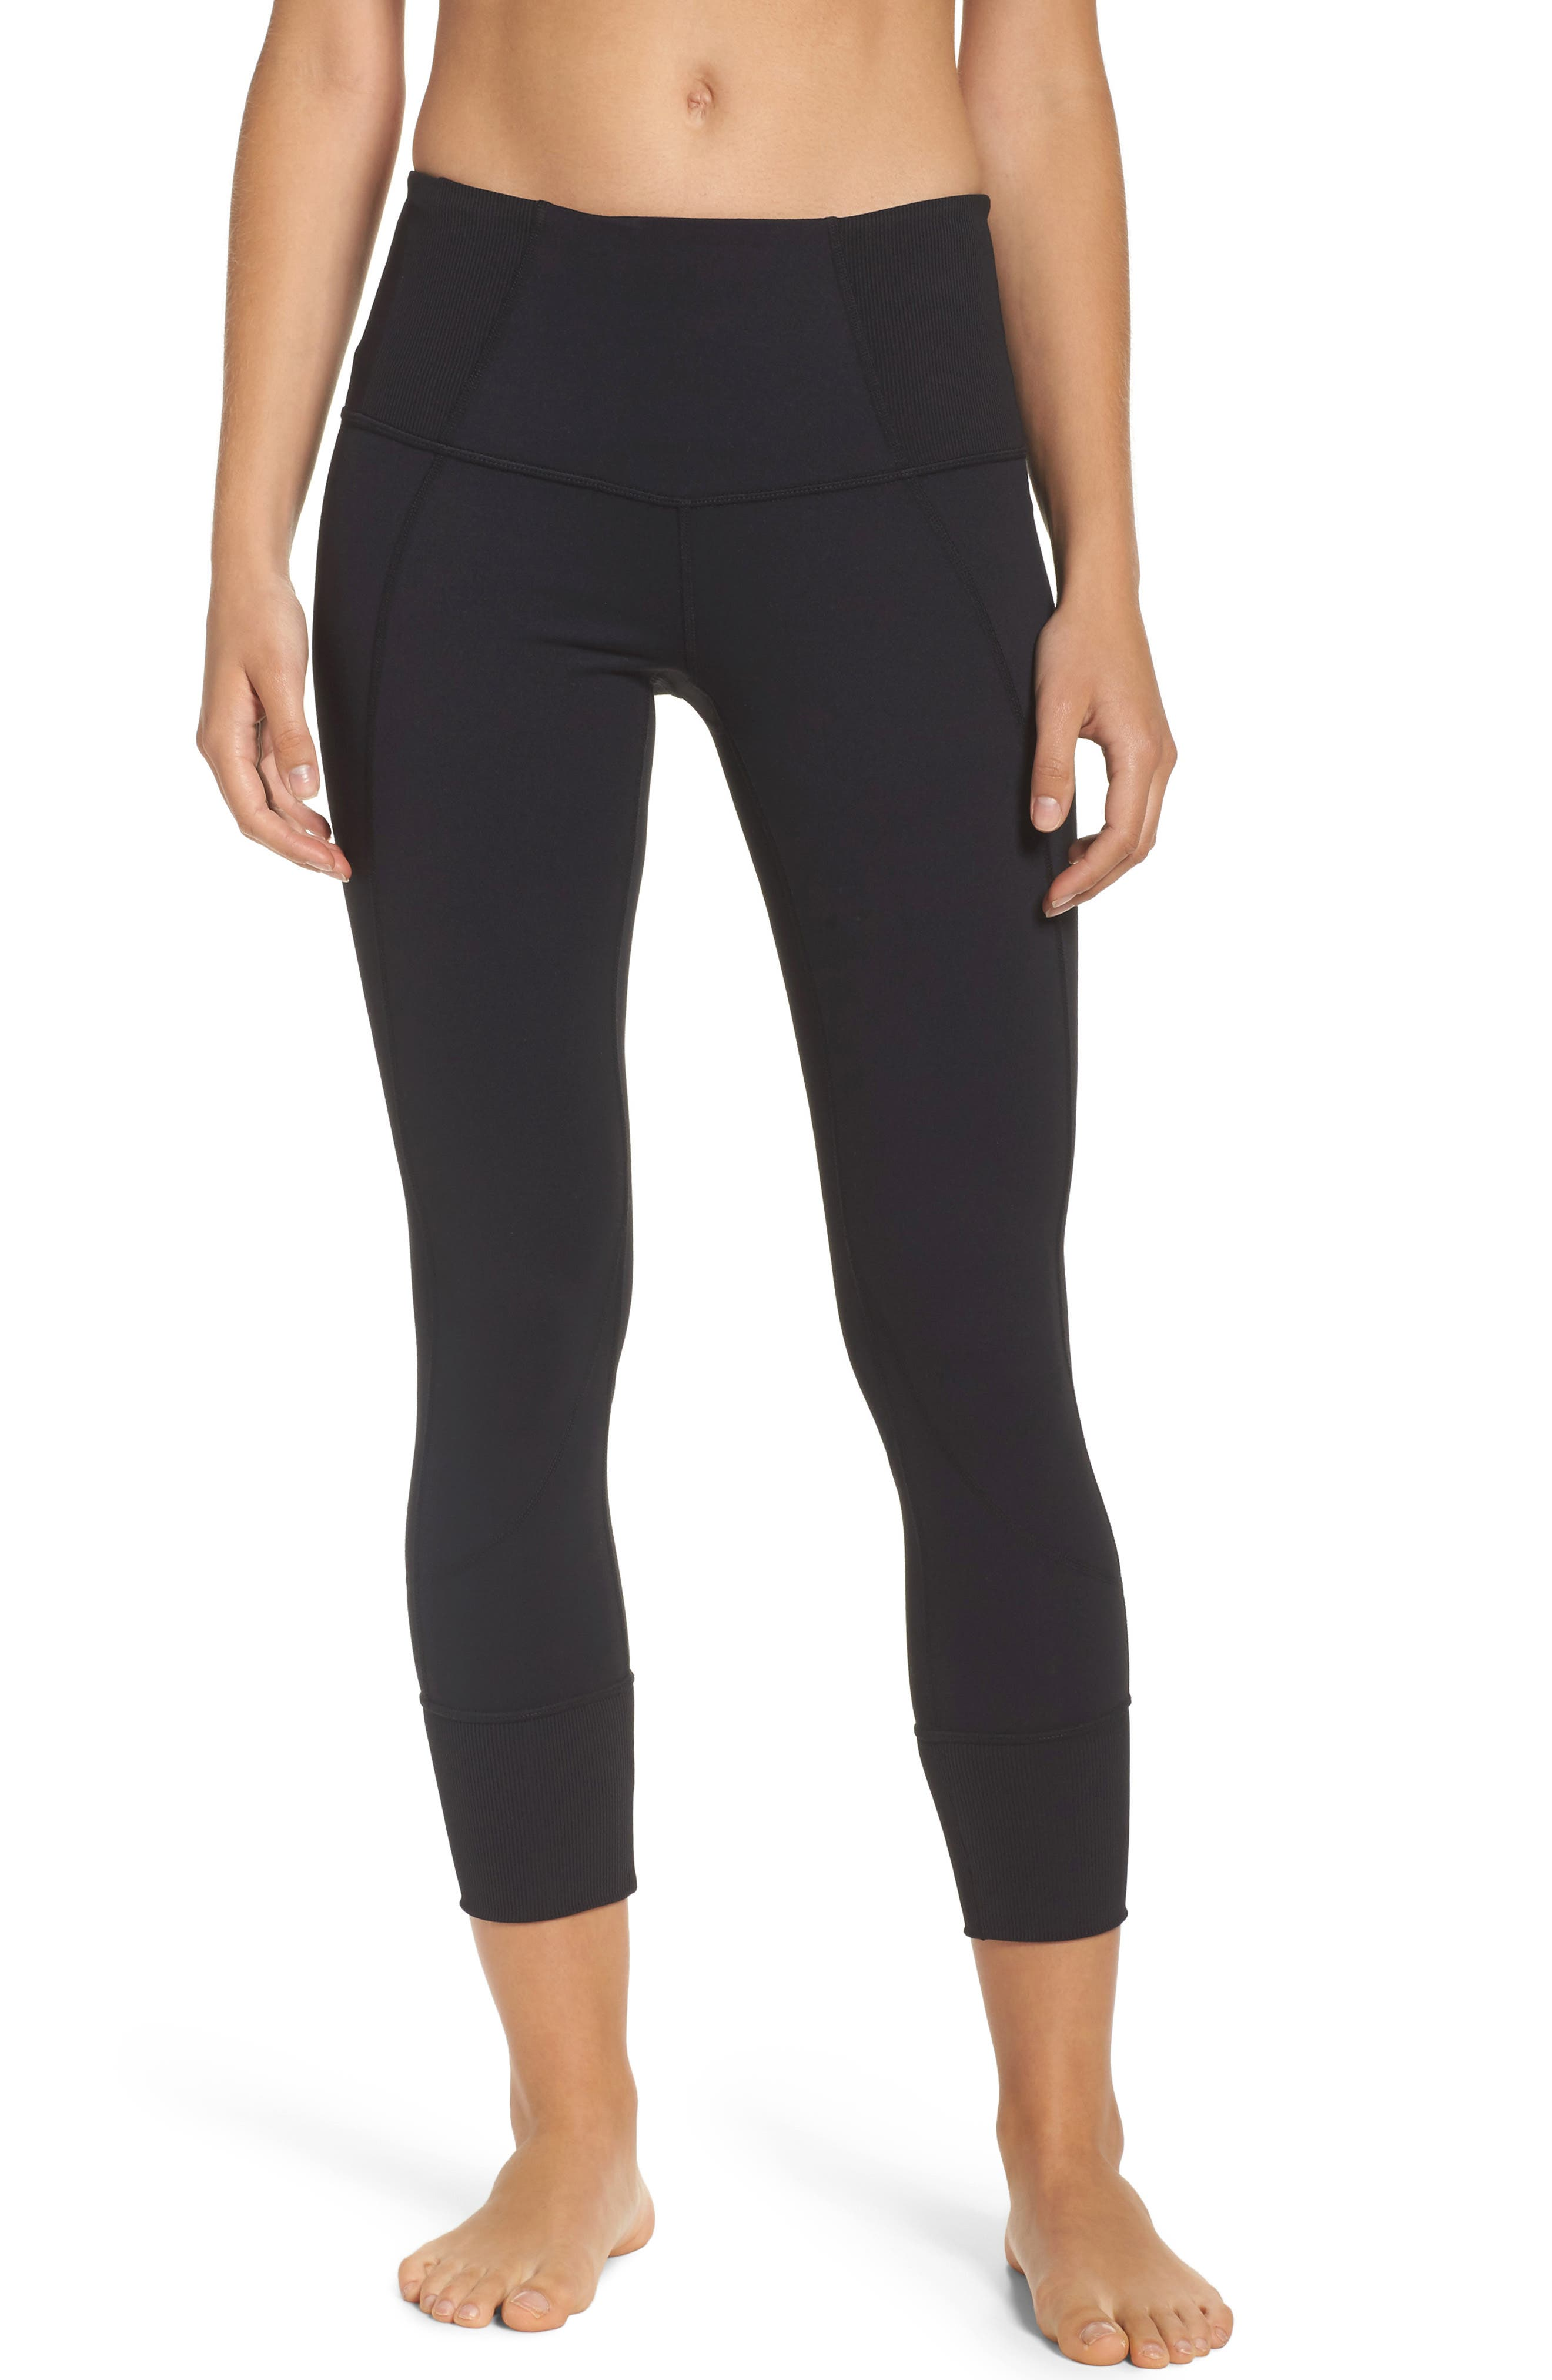 Pants for Women: White, Black, Wool, Twill & More | Nordstrom